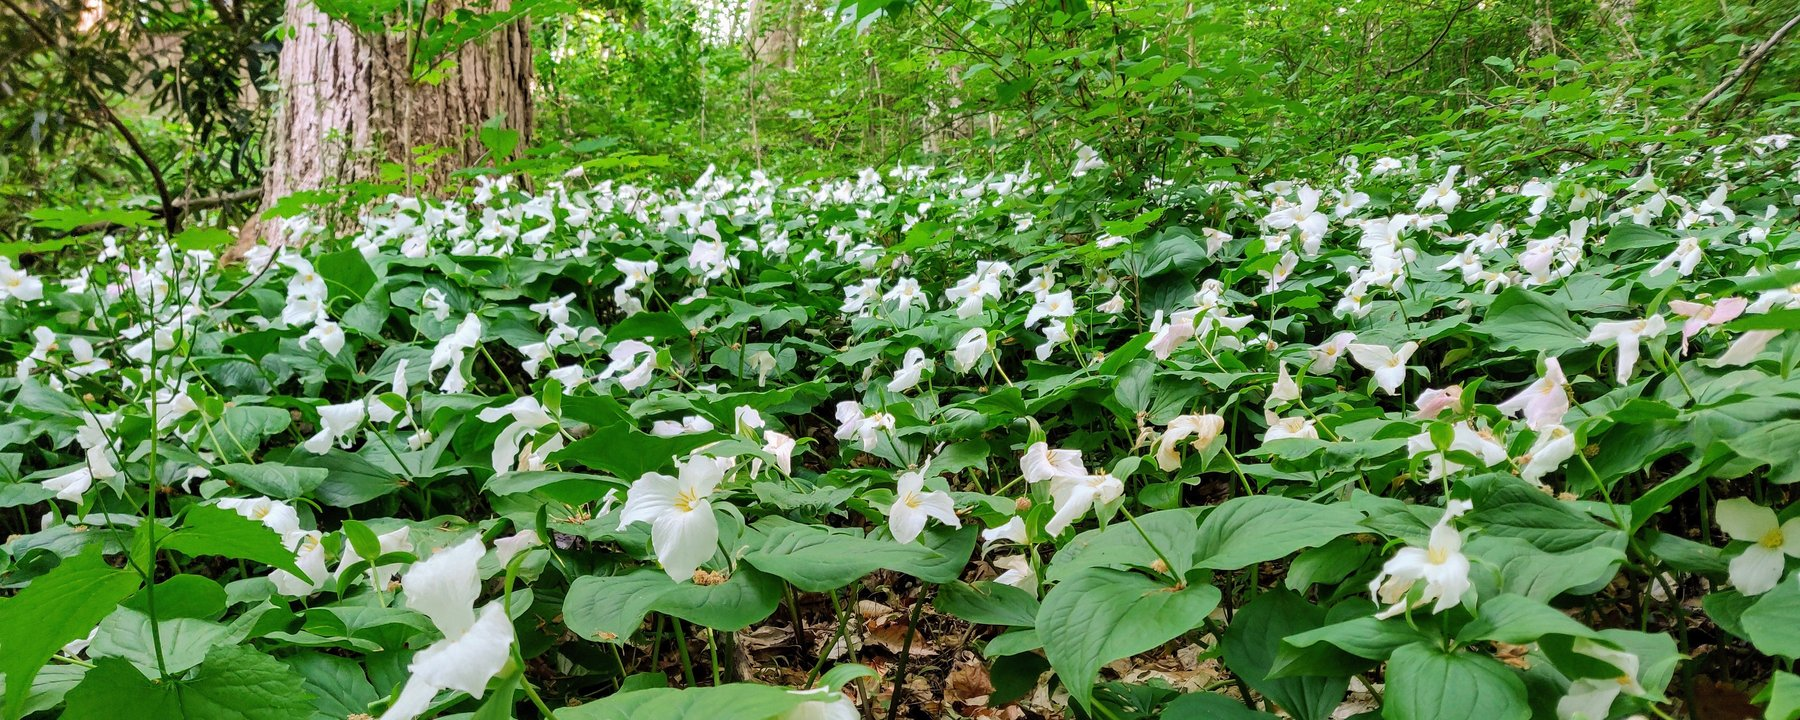 A field of trilliums in the Crum Woods